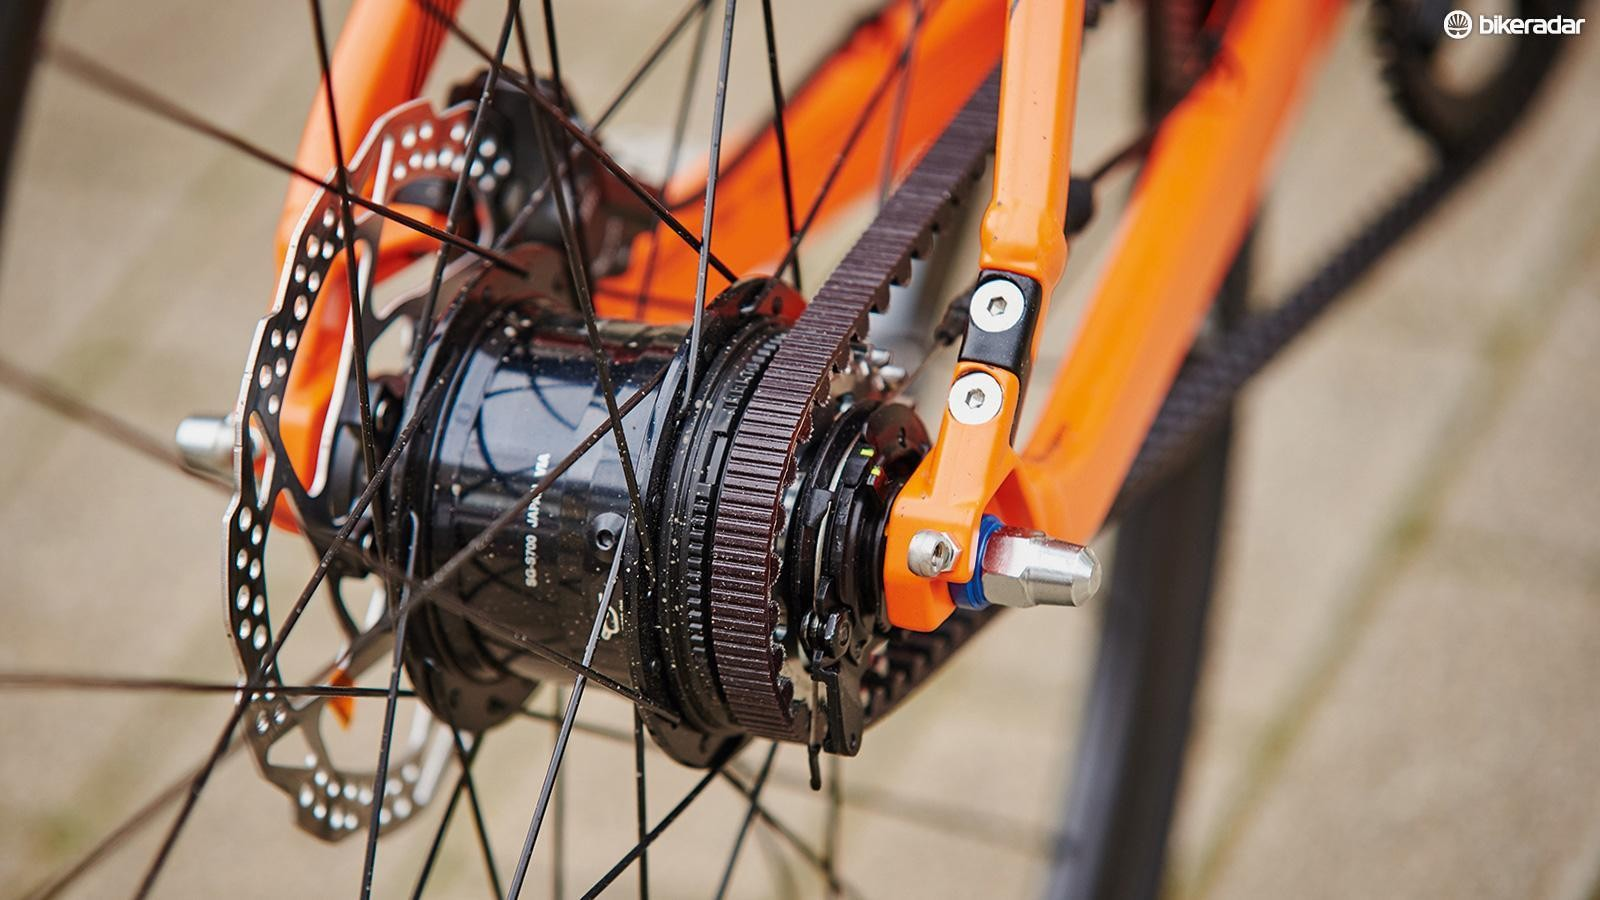 A Shimano Alfine 11-speed hub with Gates Carbon Drive belt